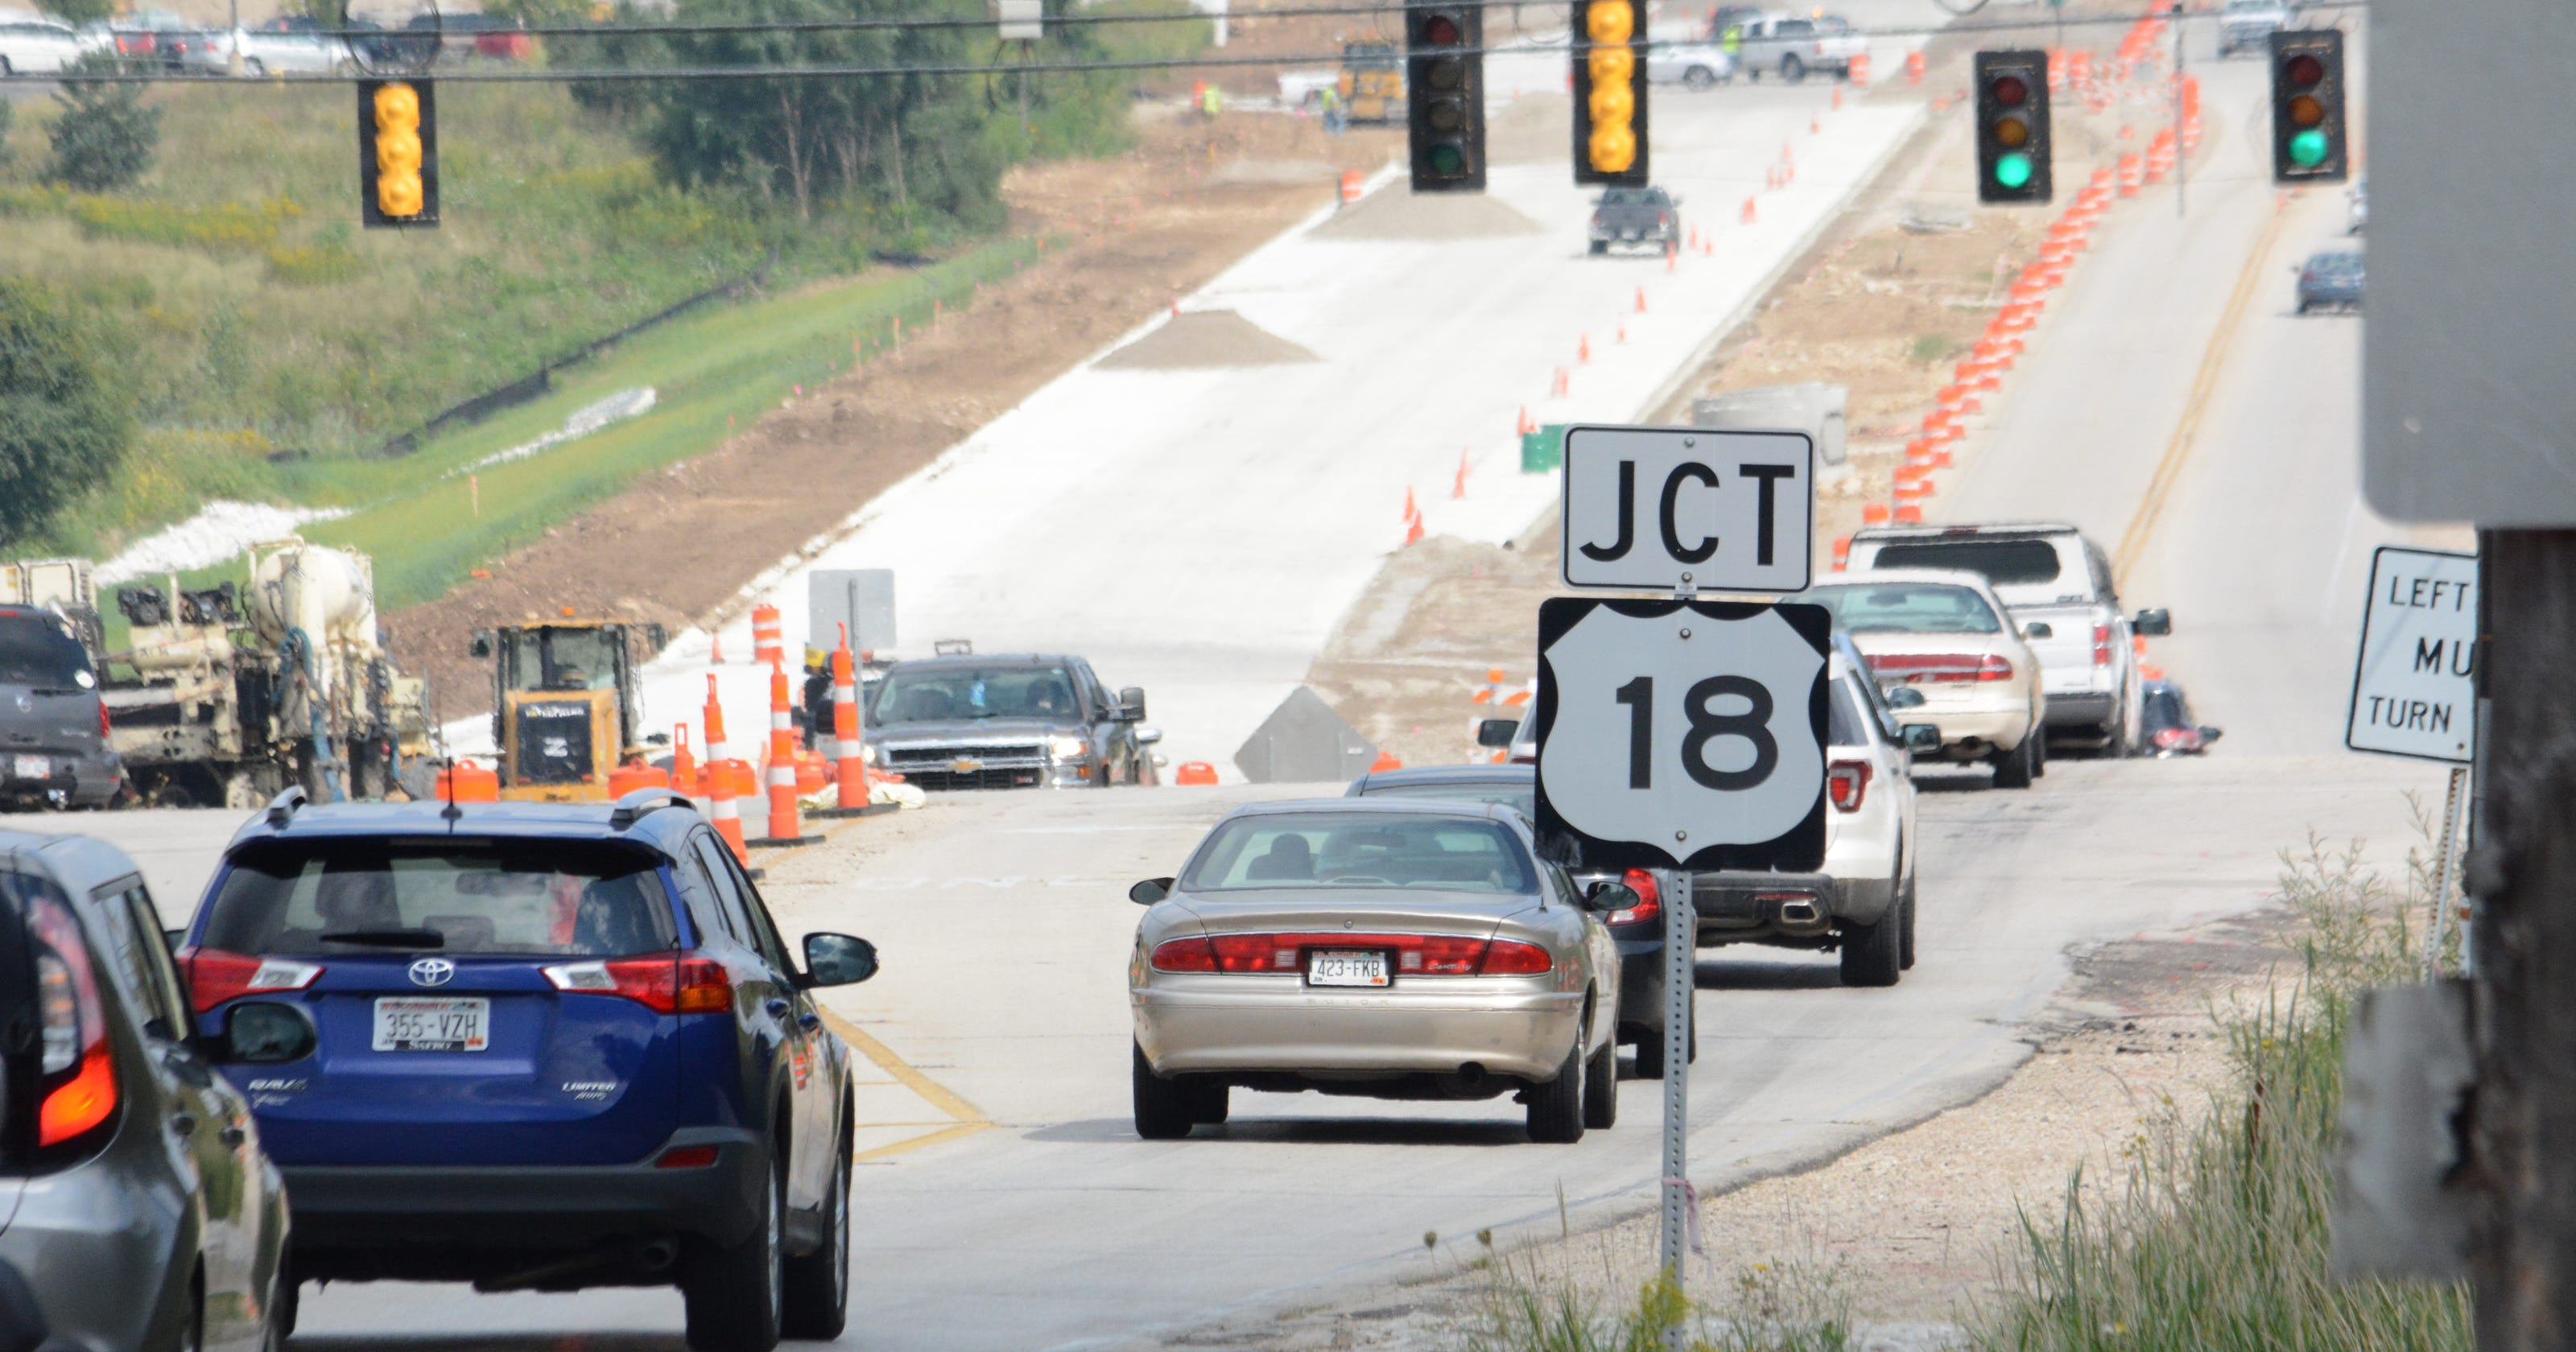 West Waukesha Bypass project to be complete by fall 2019, DOT says